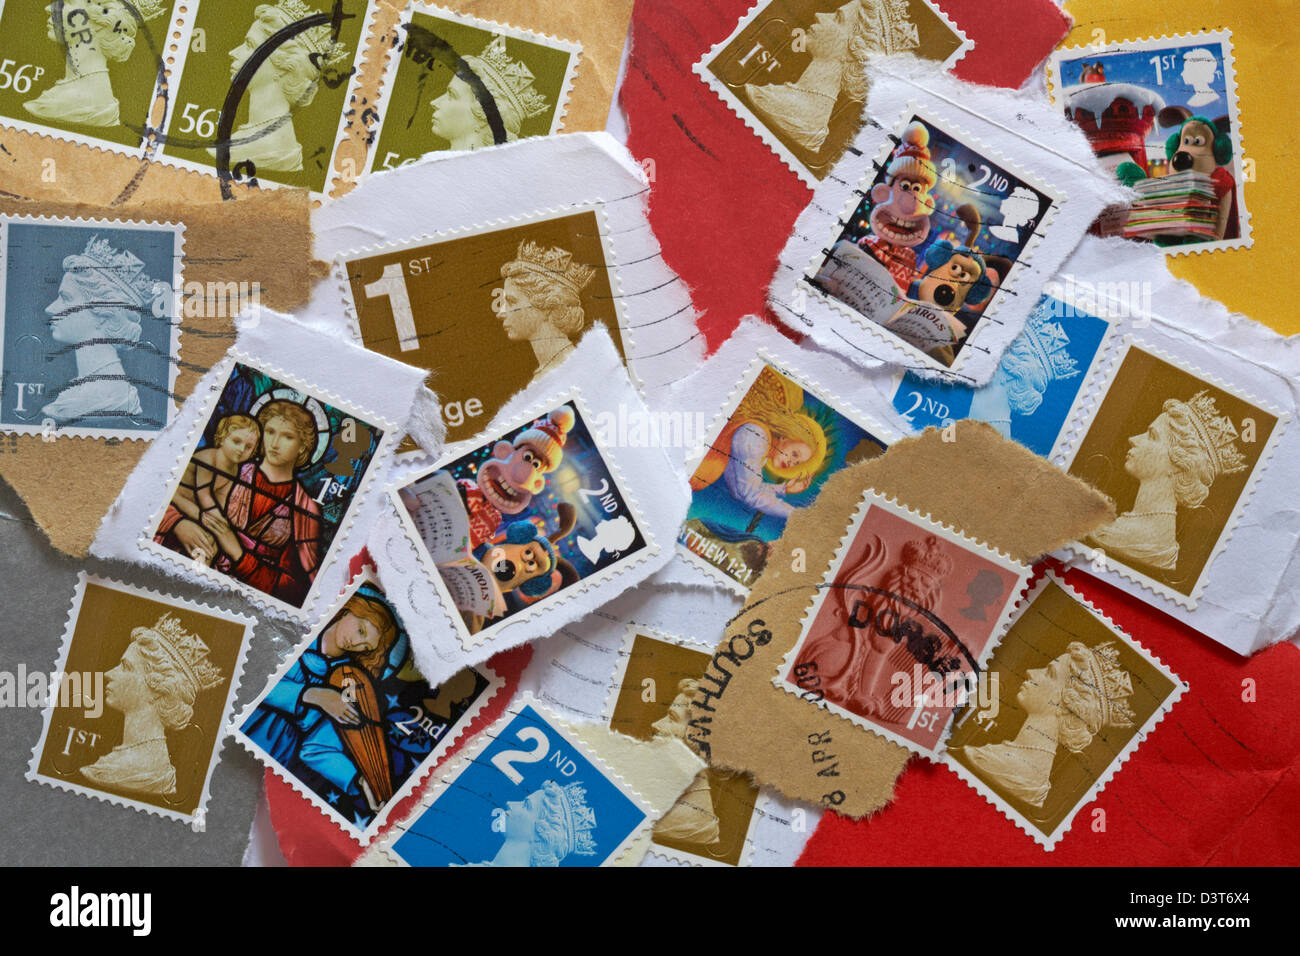 pile of used British postage stamps torn off envelopes and postcards - Stock Image